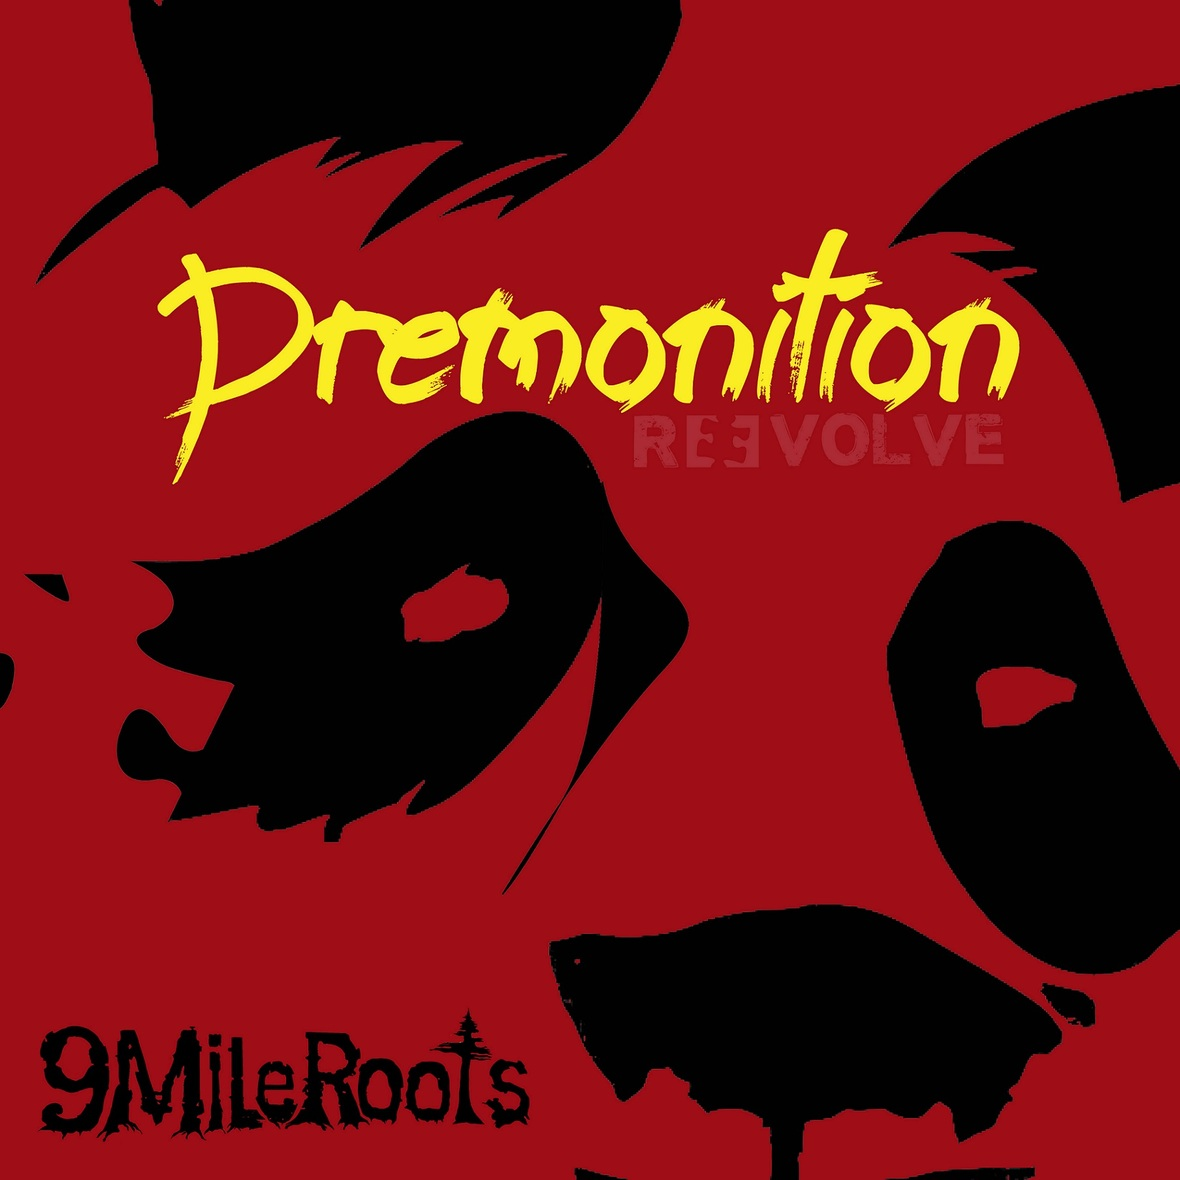 9 Mile Roots - PremonitionSmall